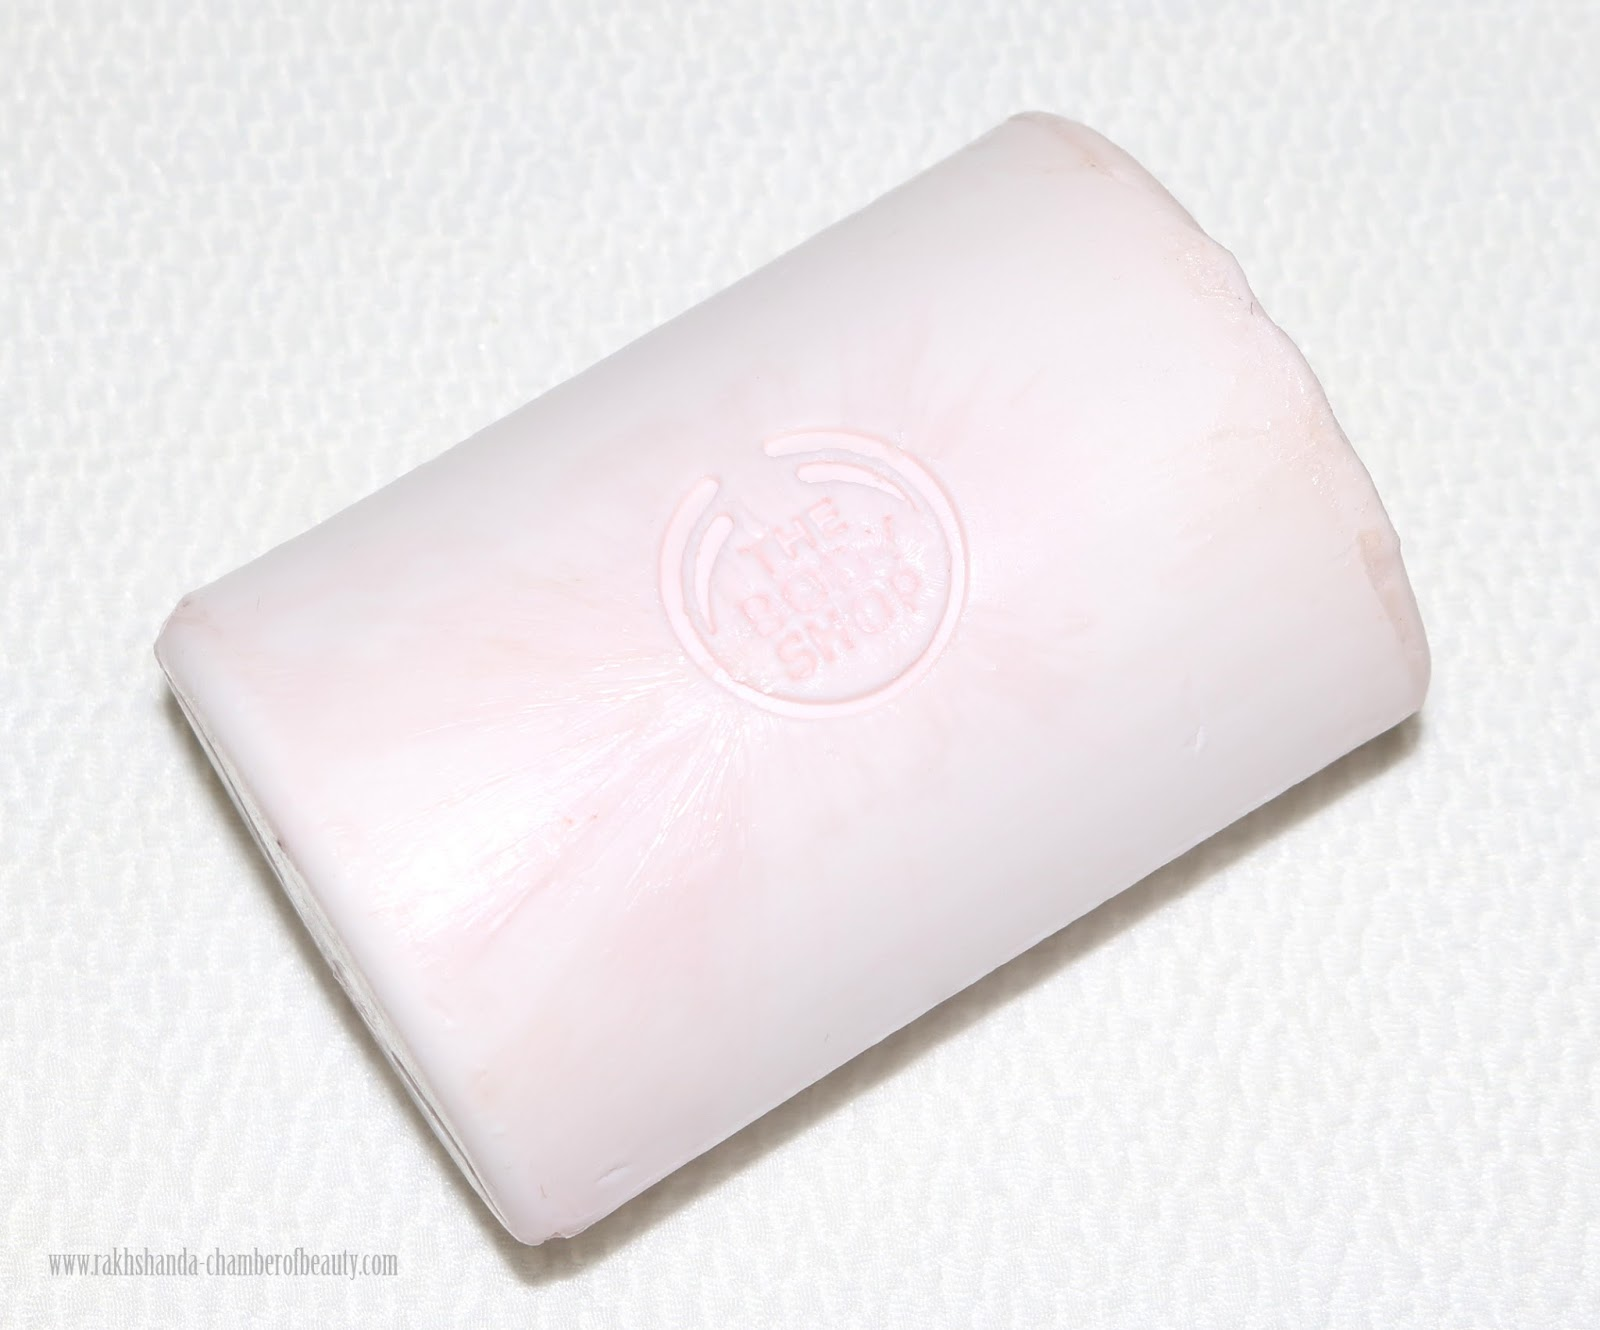 THE BODY SHOP, THE BODY SHOP FACIAL CLEANSING BAR REVIEW